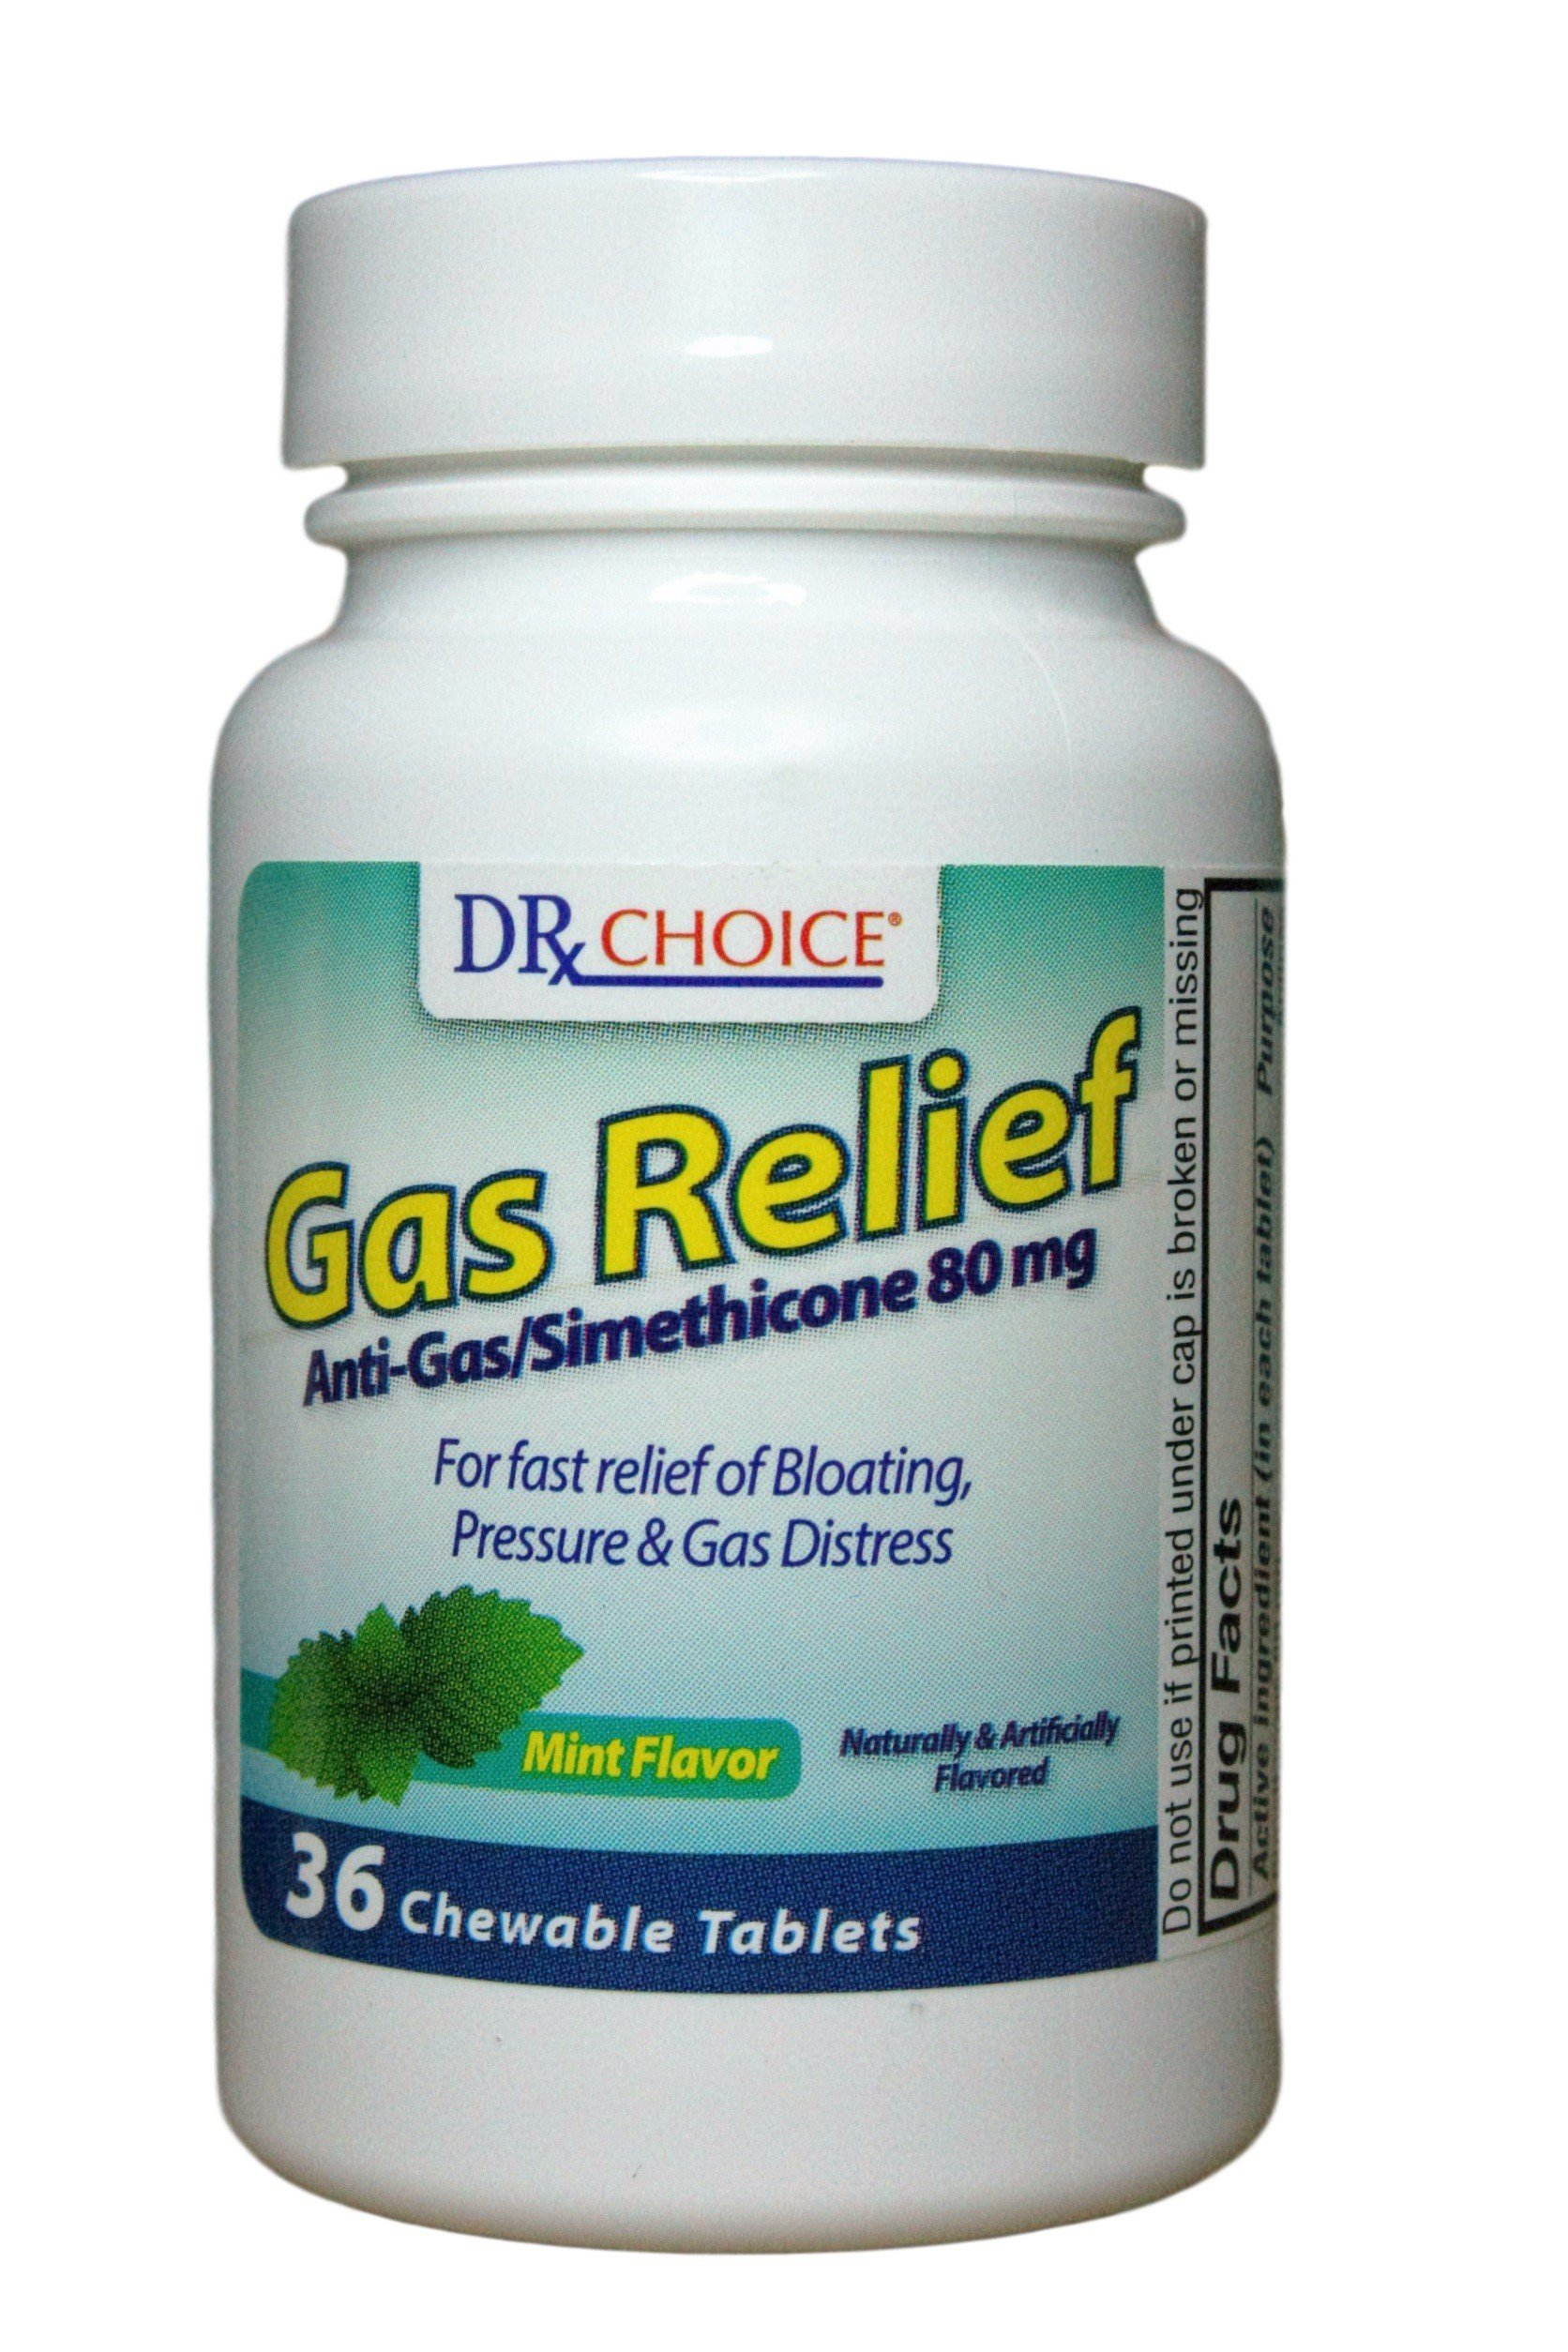 Dr Choice Gas Relief Anti-gas/simethicone 80mg 36 Chewable Tablets